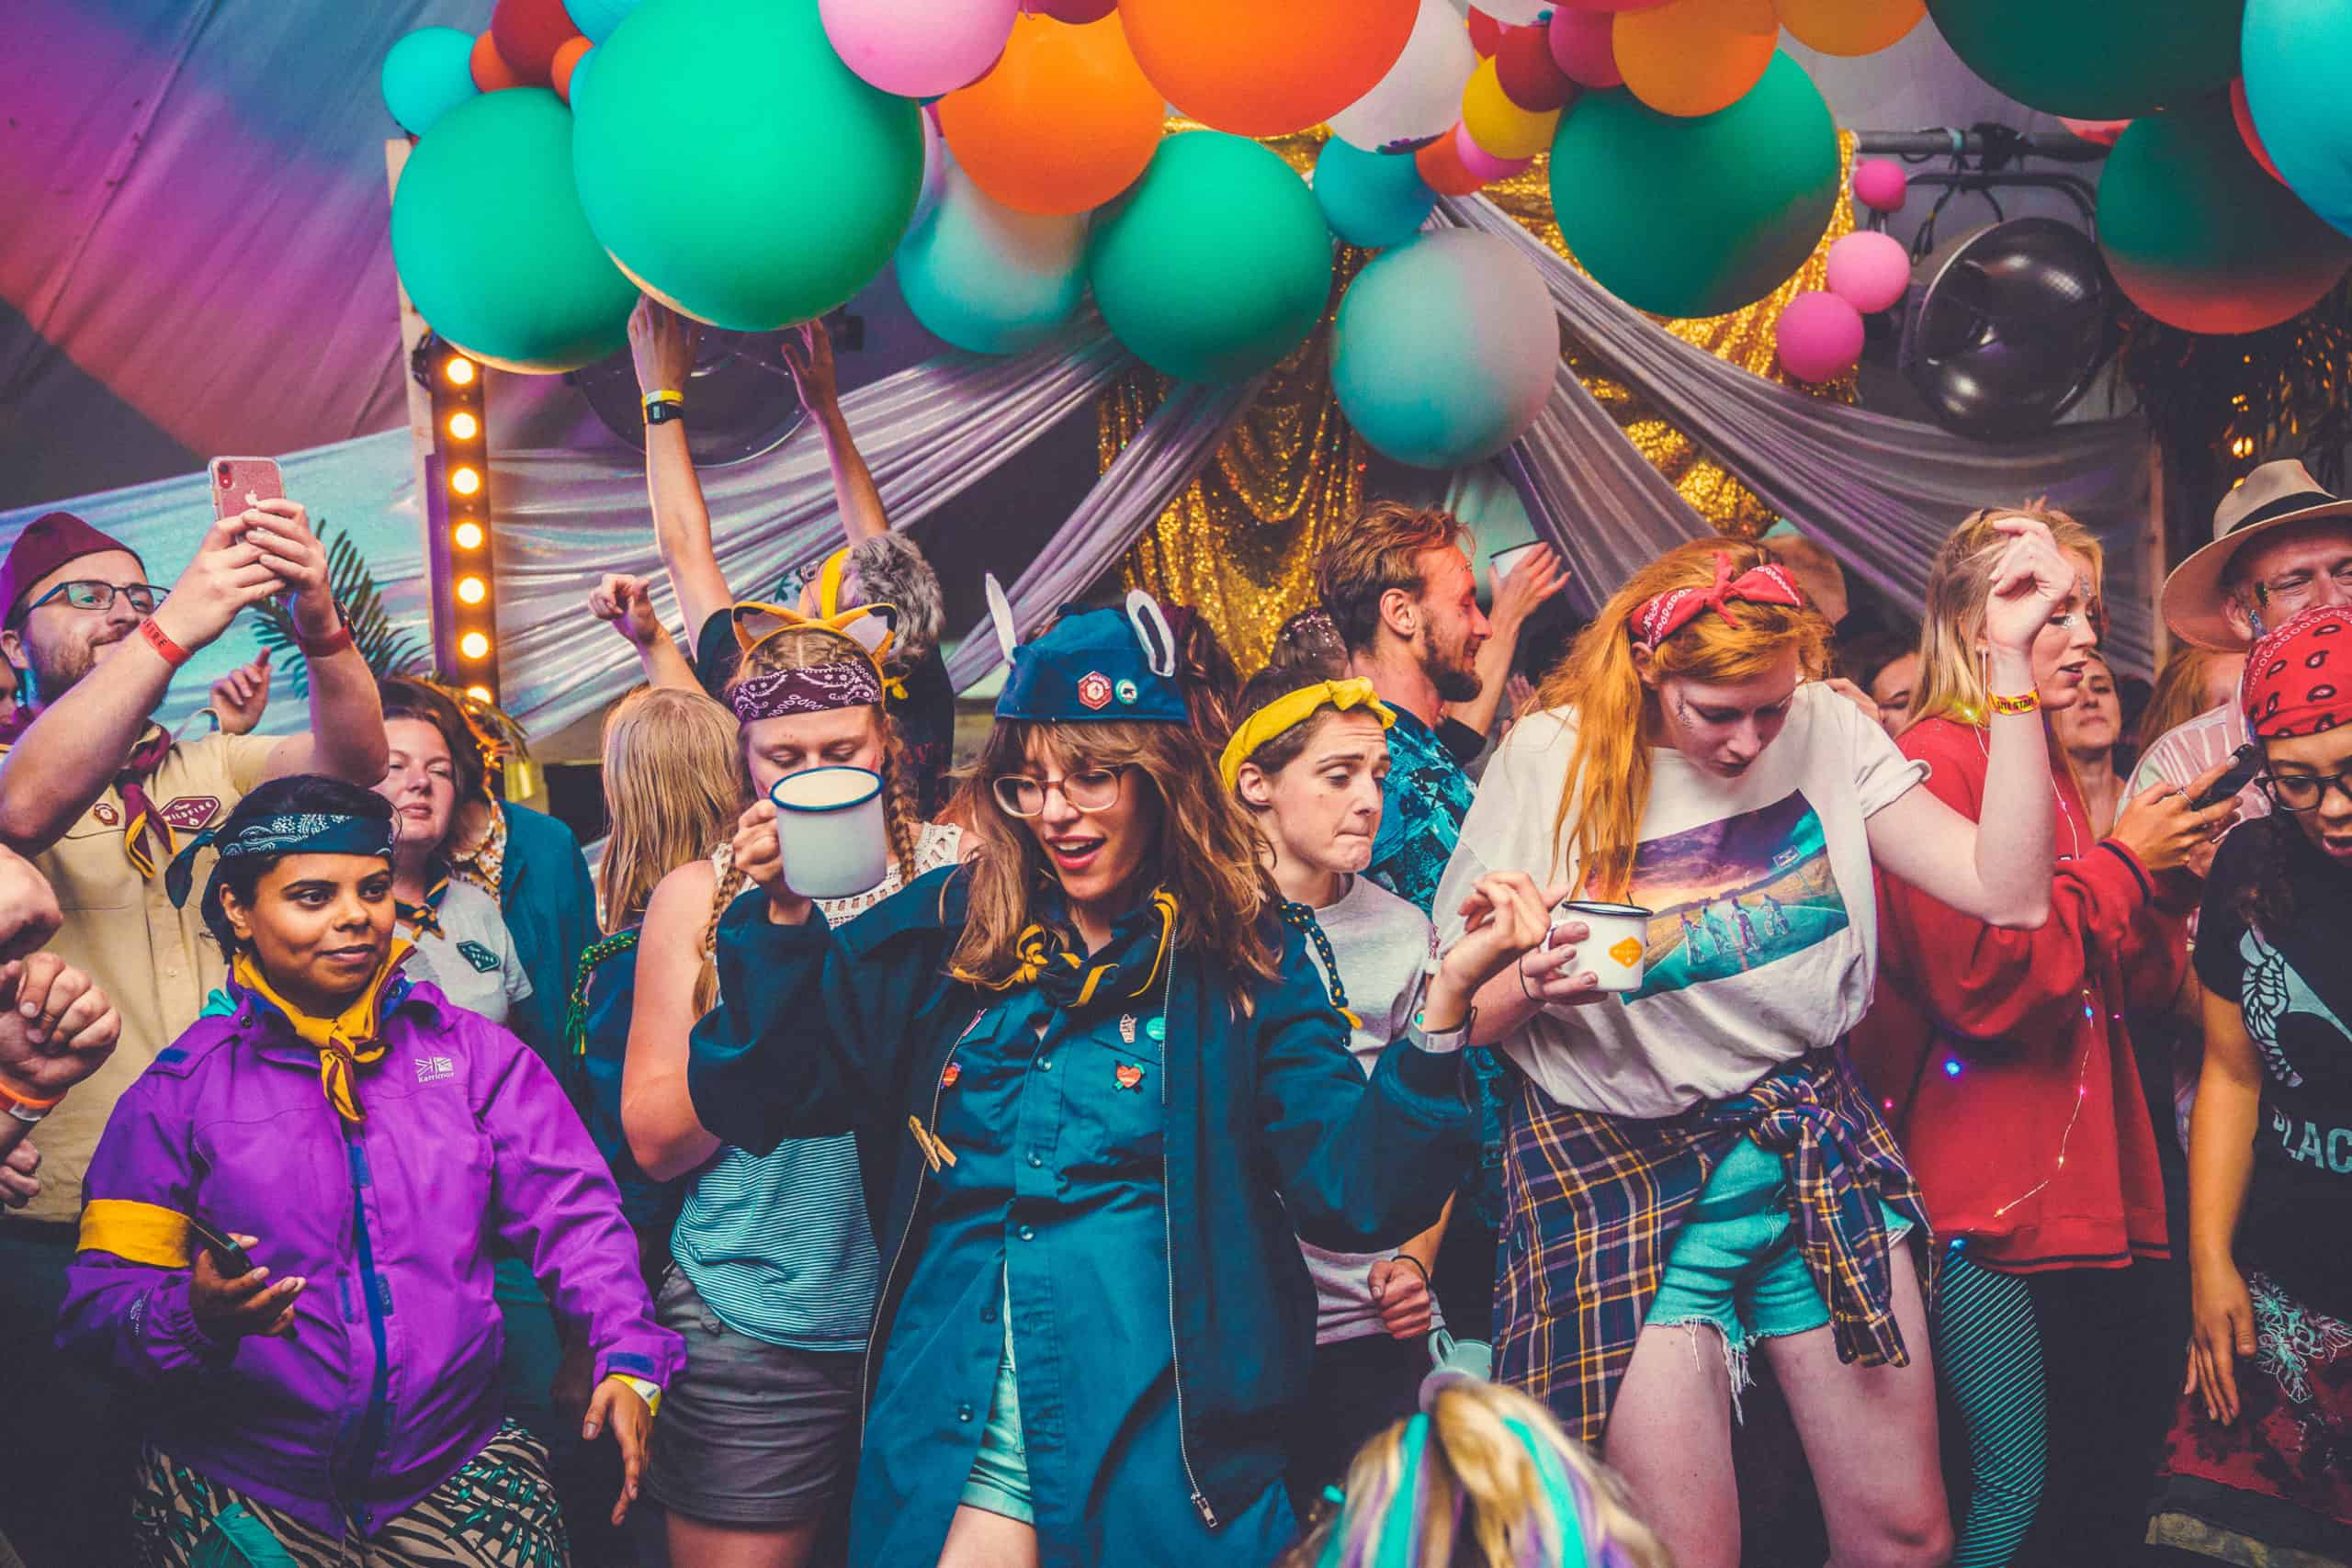 Lots of wild things partying underneath colourful balloons at Camp Wildfire. A summer weekend break in a forest near London and Kent. An outdoor woodland retreat featuring adventure activities, live music, DJs, parties and camping. Half summer adventure activity camp, half music festival, for adults only.